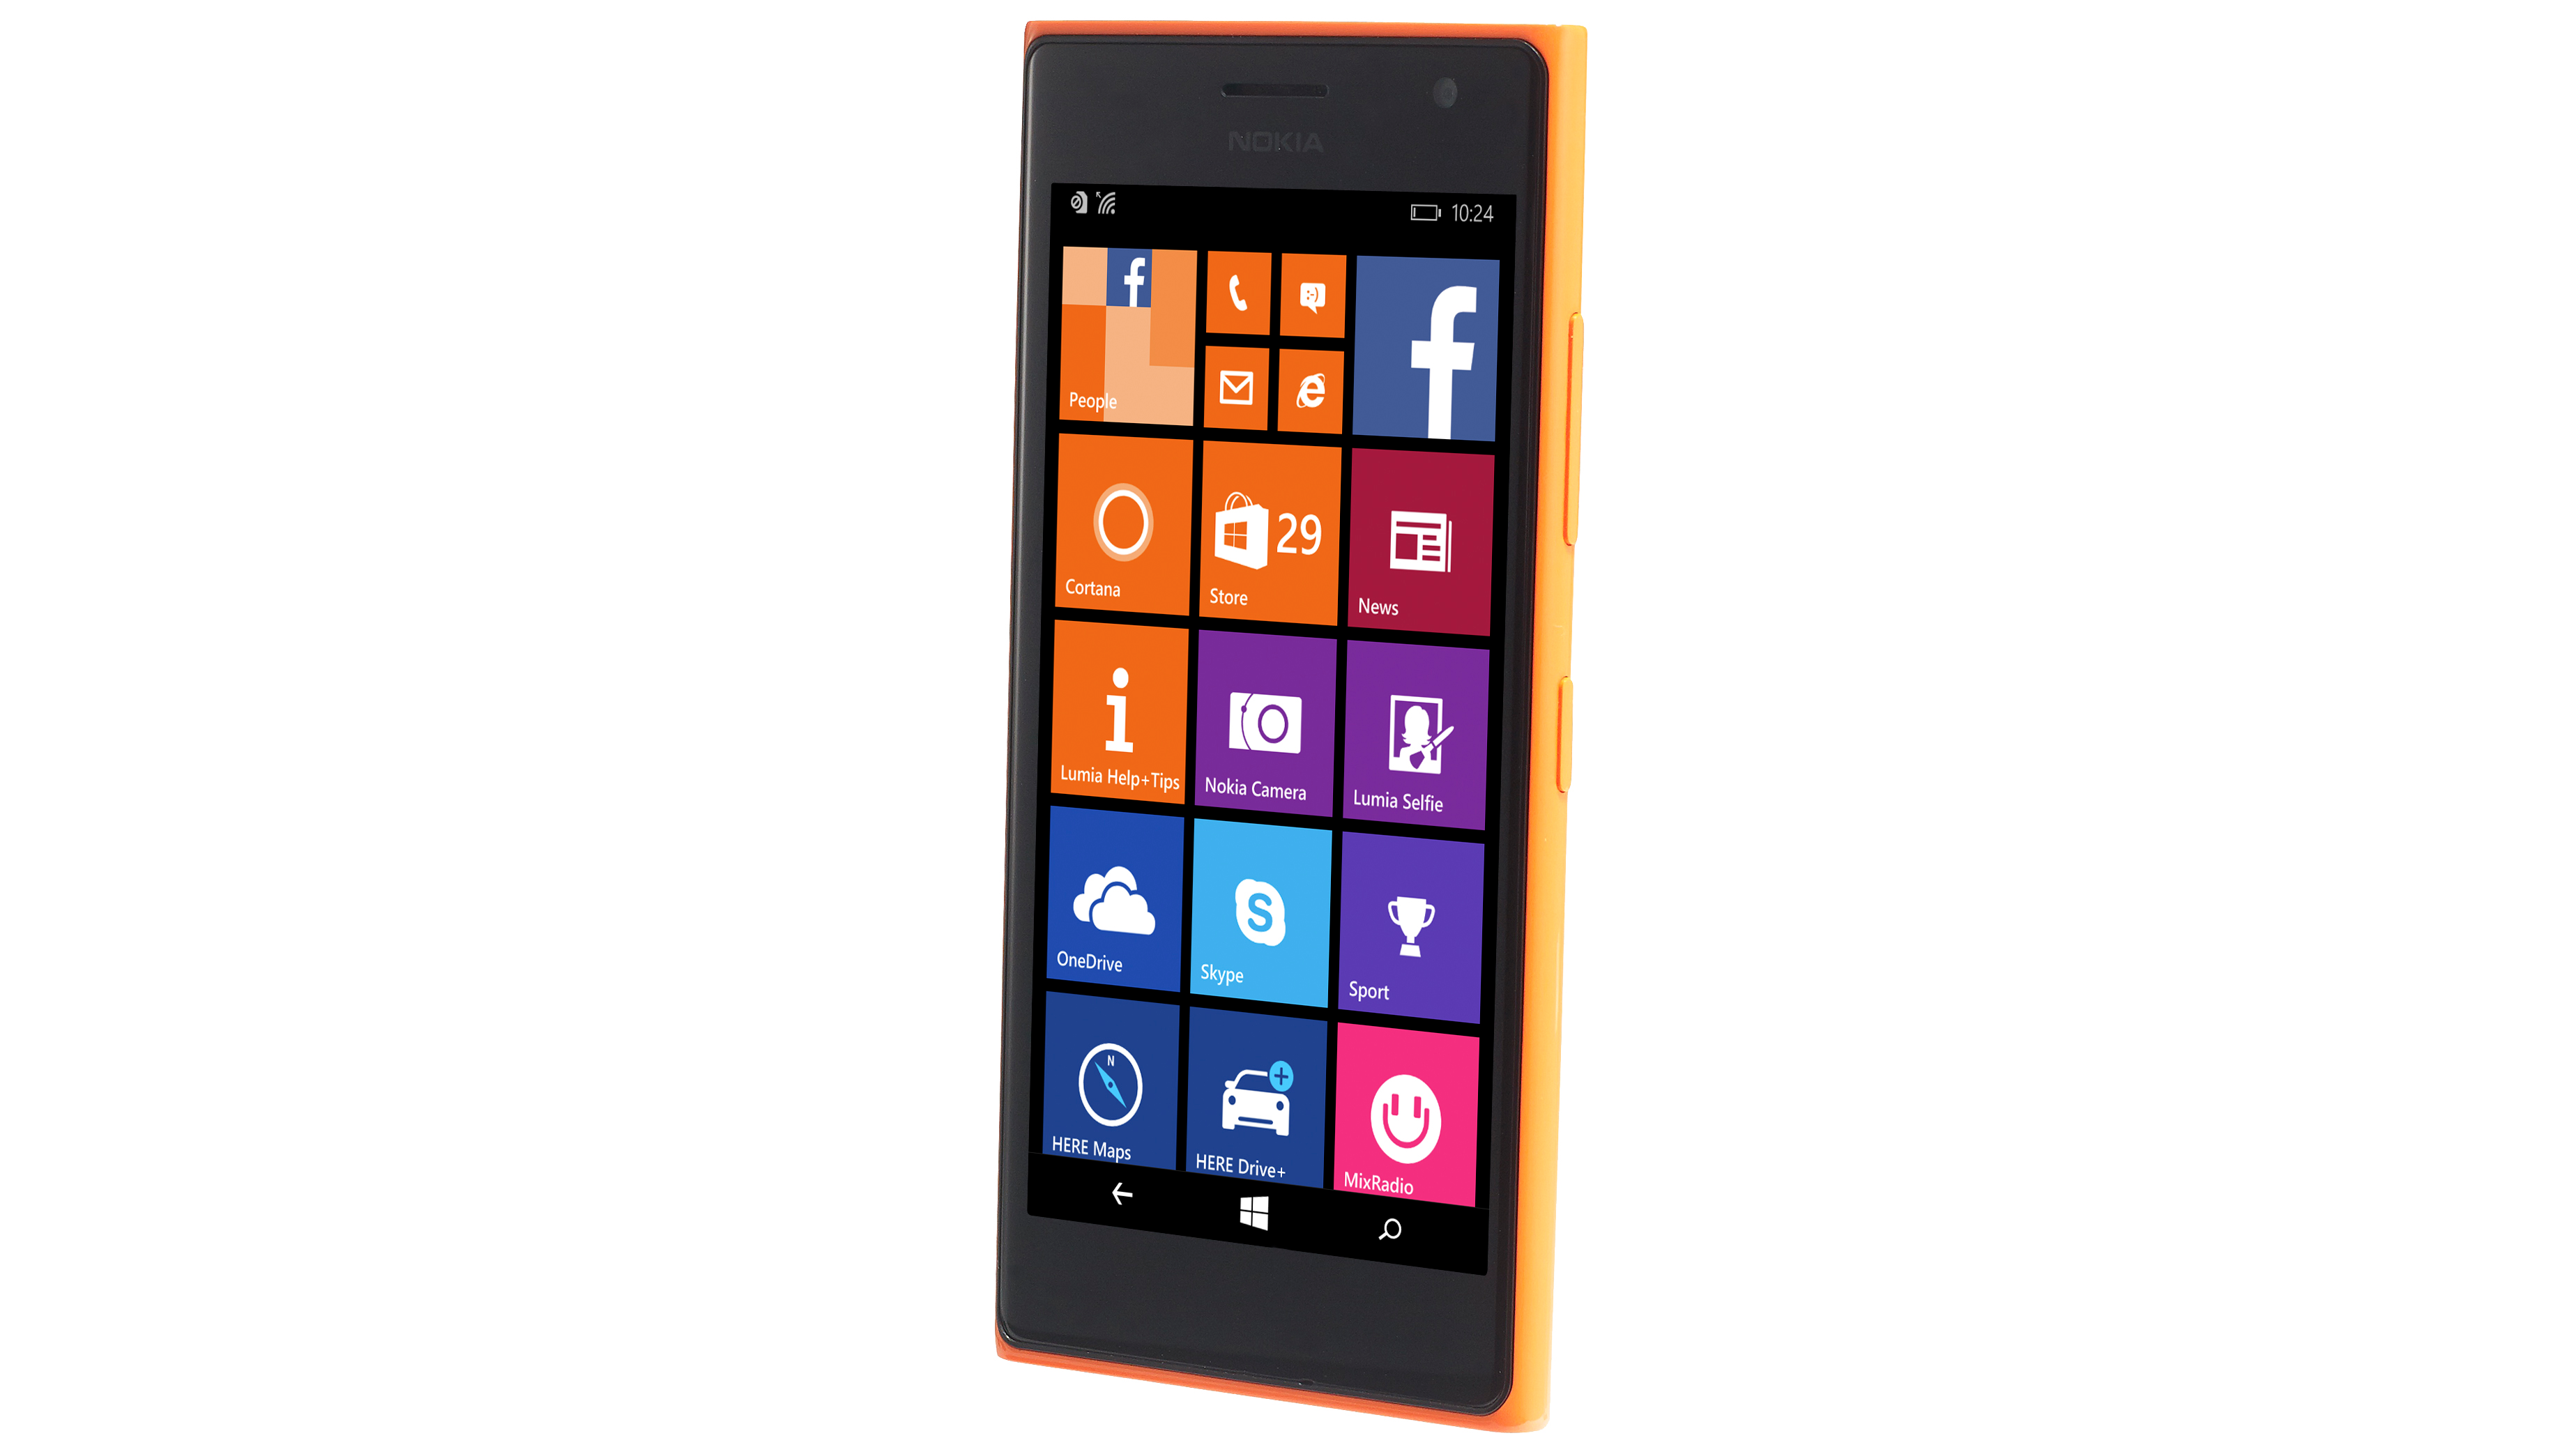 Nokia Lumia 735 Review Expert Reviews - 3695x2086 - png